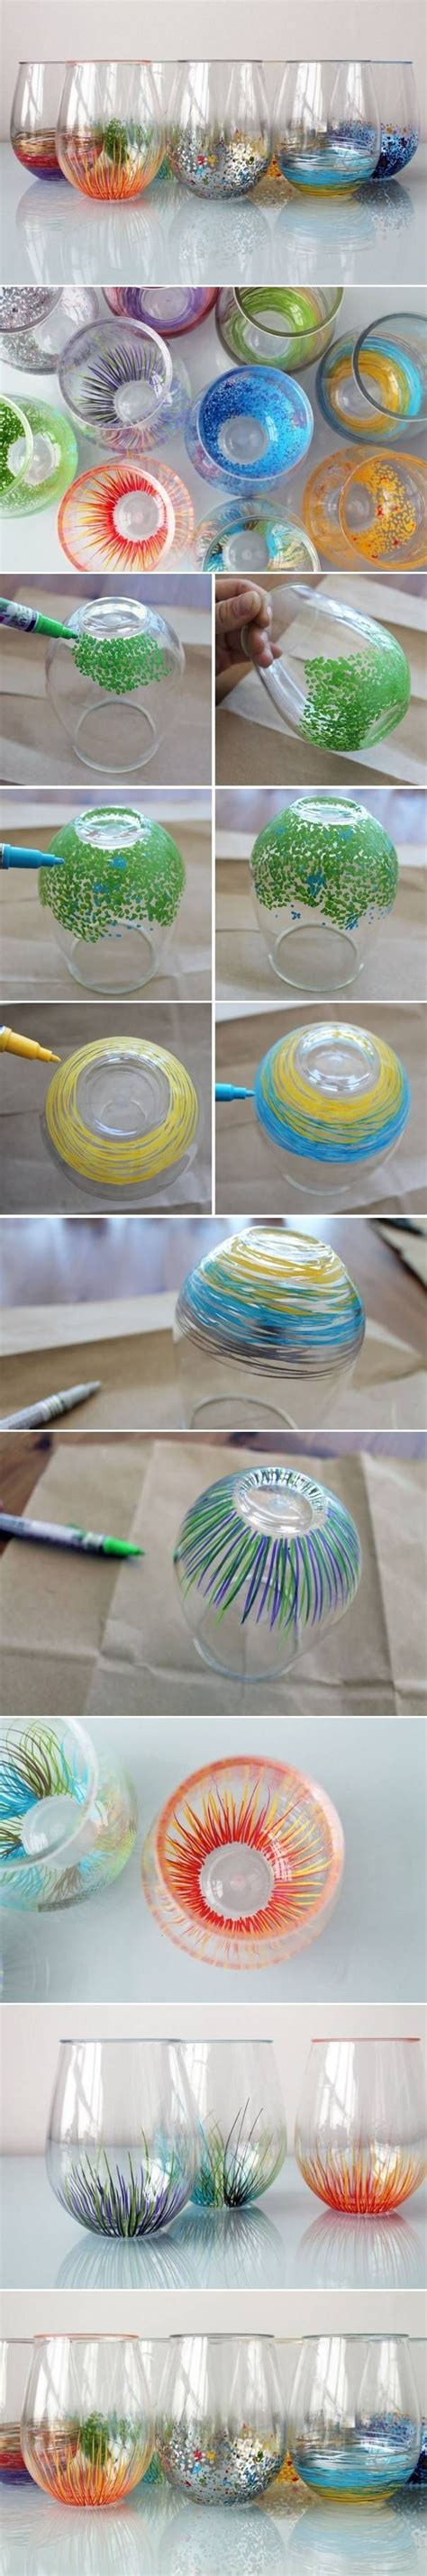 Decorating Glass With Sharpies by Decorated Stemless Wine Glasses Sharpie Paint Markers I